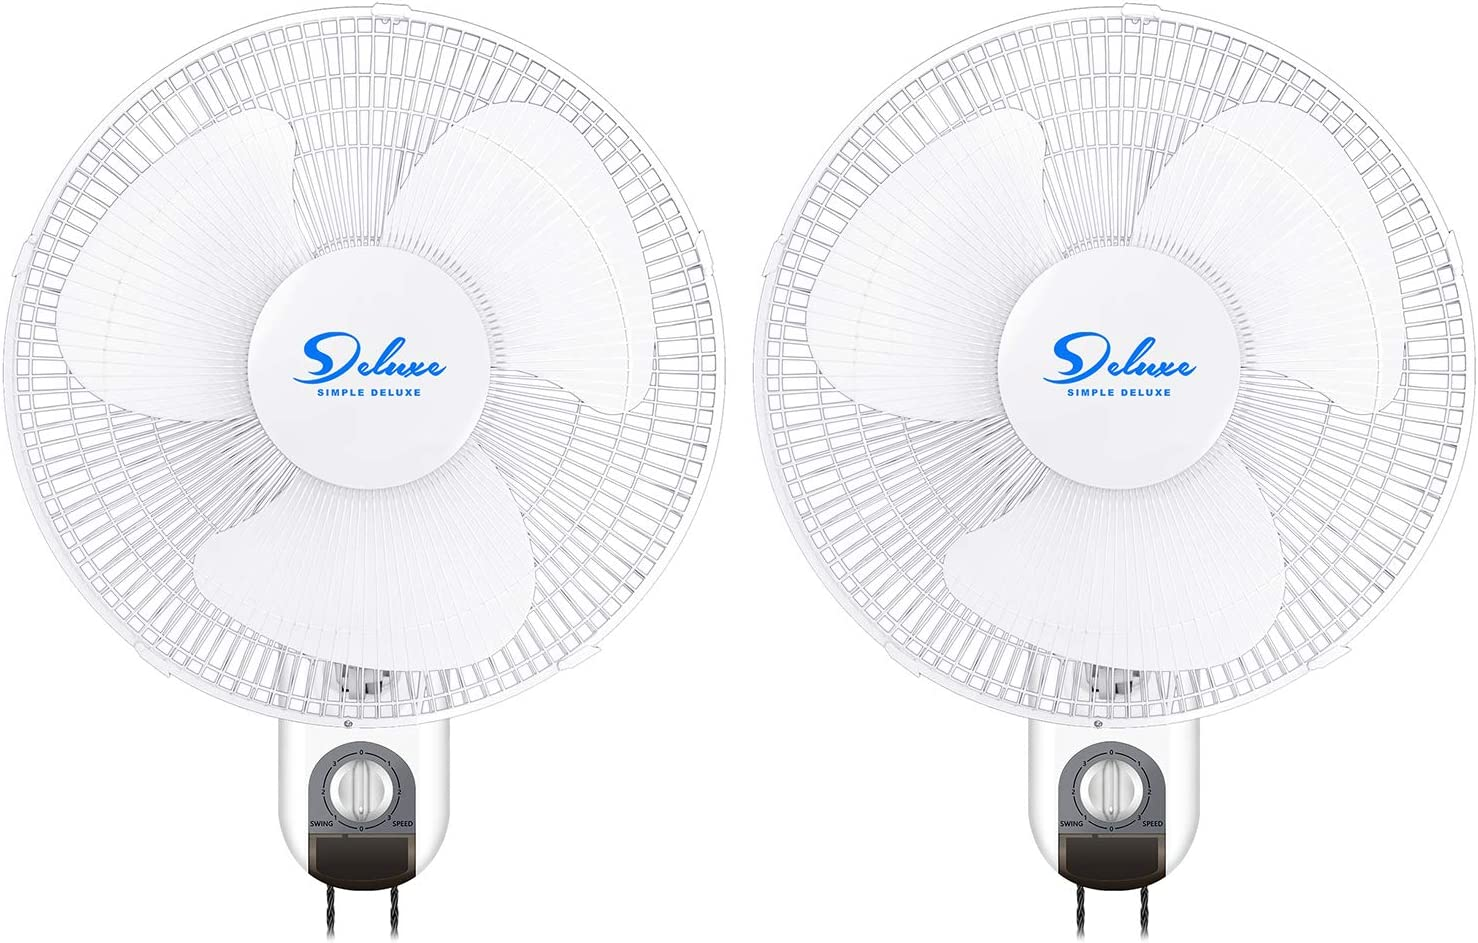 Simple Deluxe 16 Inch Wall Mount Fan - 3 Speed - 3 Oscillating Modes , White, 2-PACK